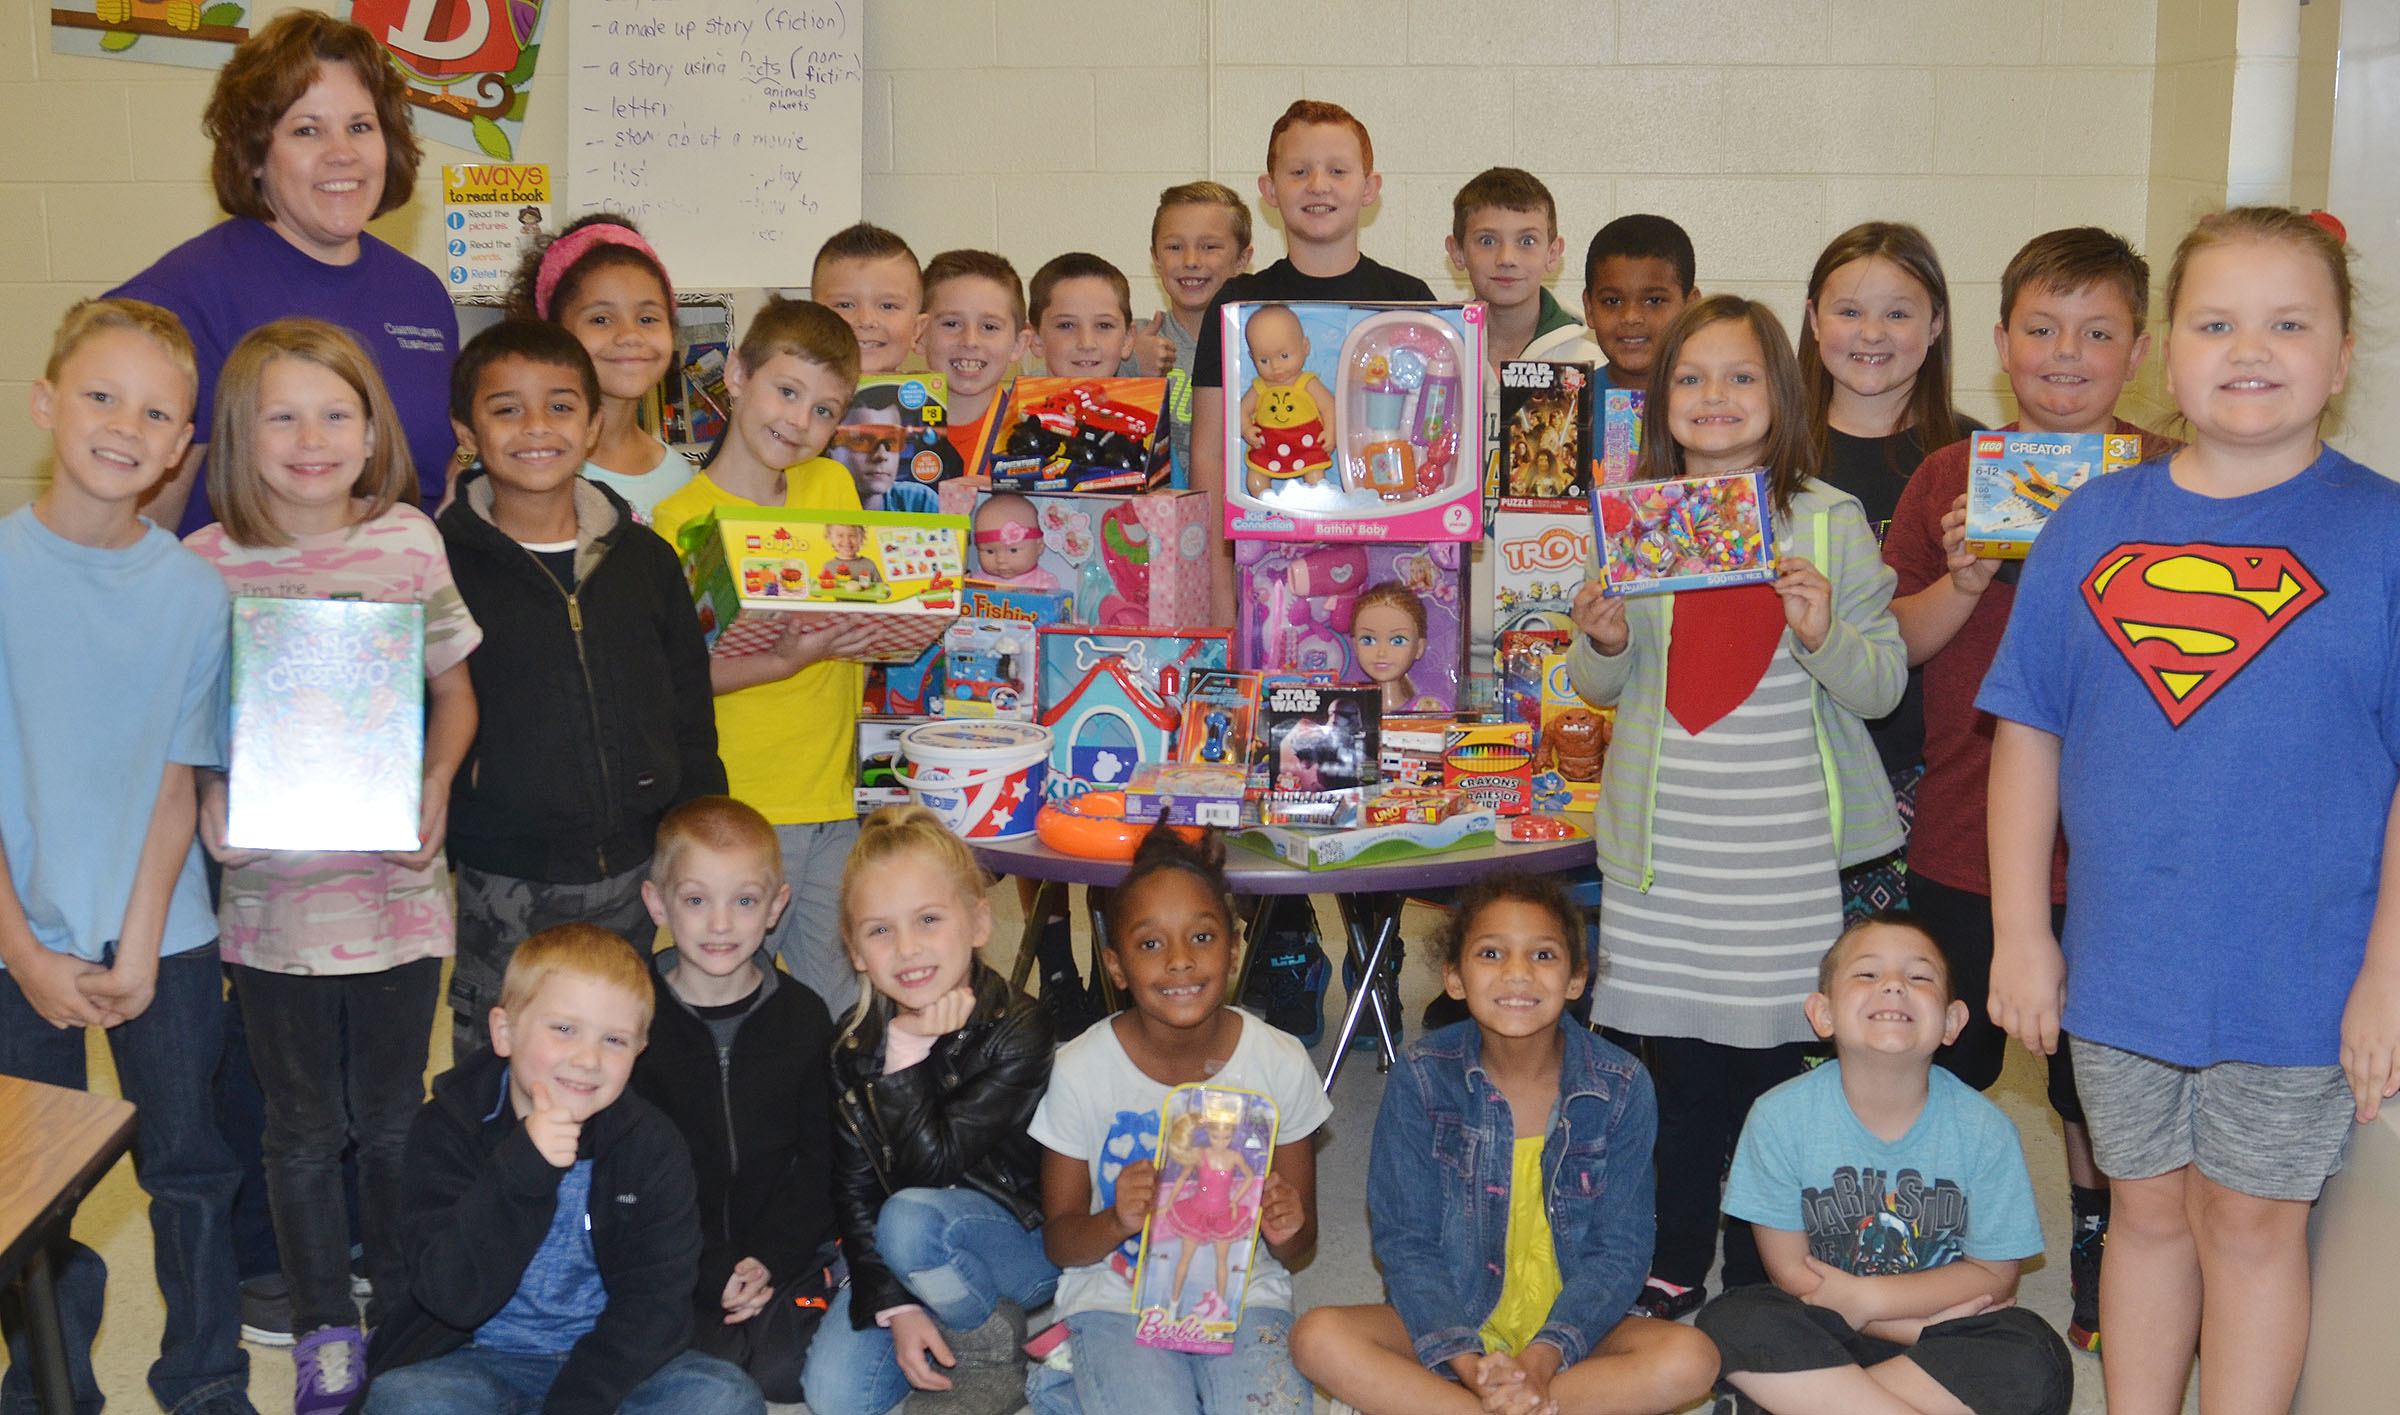 CES students recently competed to see which classroom could bring in the most toys to donate to Operation Christmas Smiles. Tracey Rinehart's second-grade students donated the most toys and will receive a Christmas pizza party.